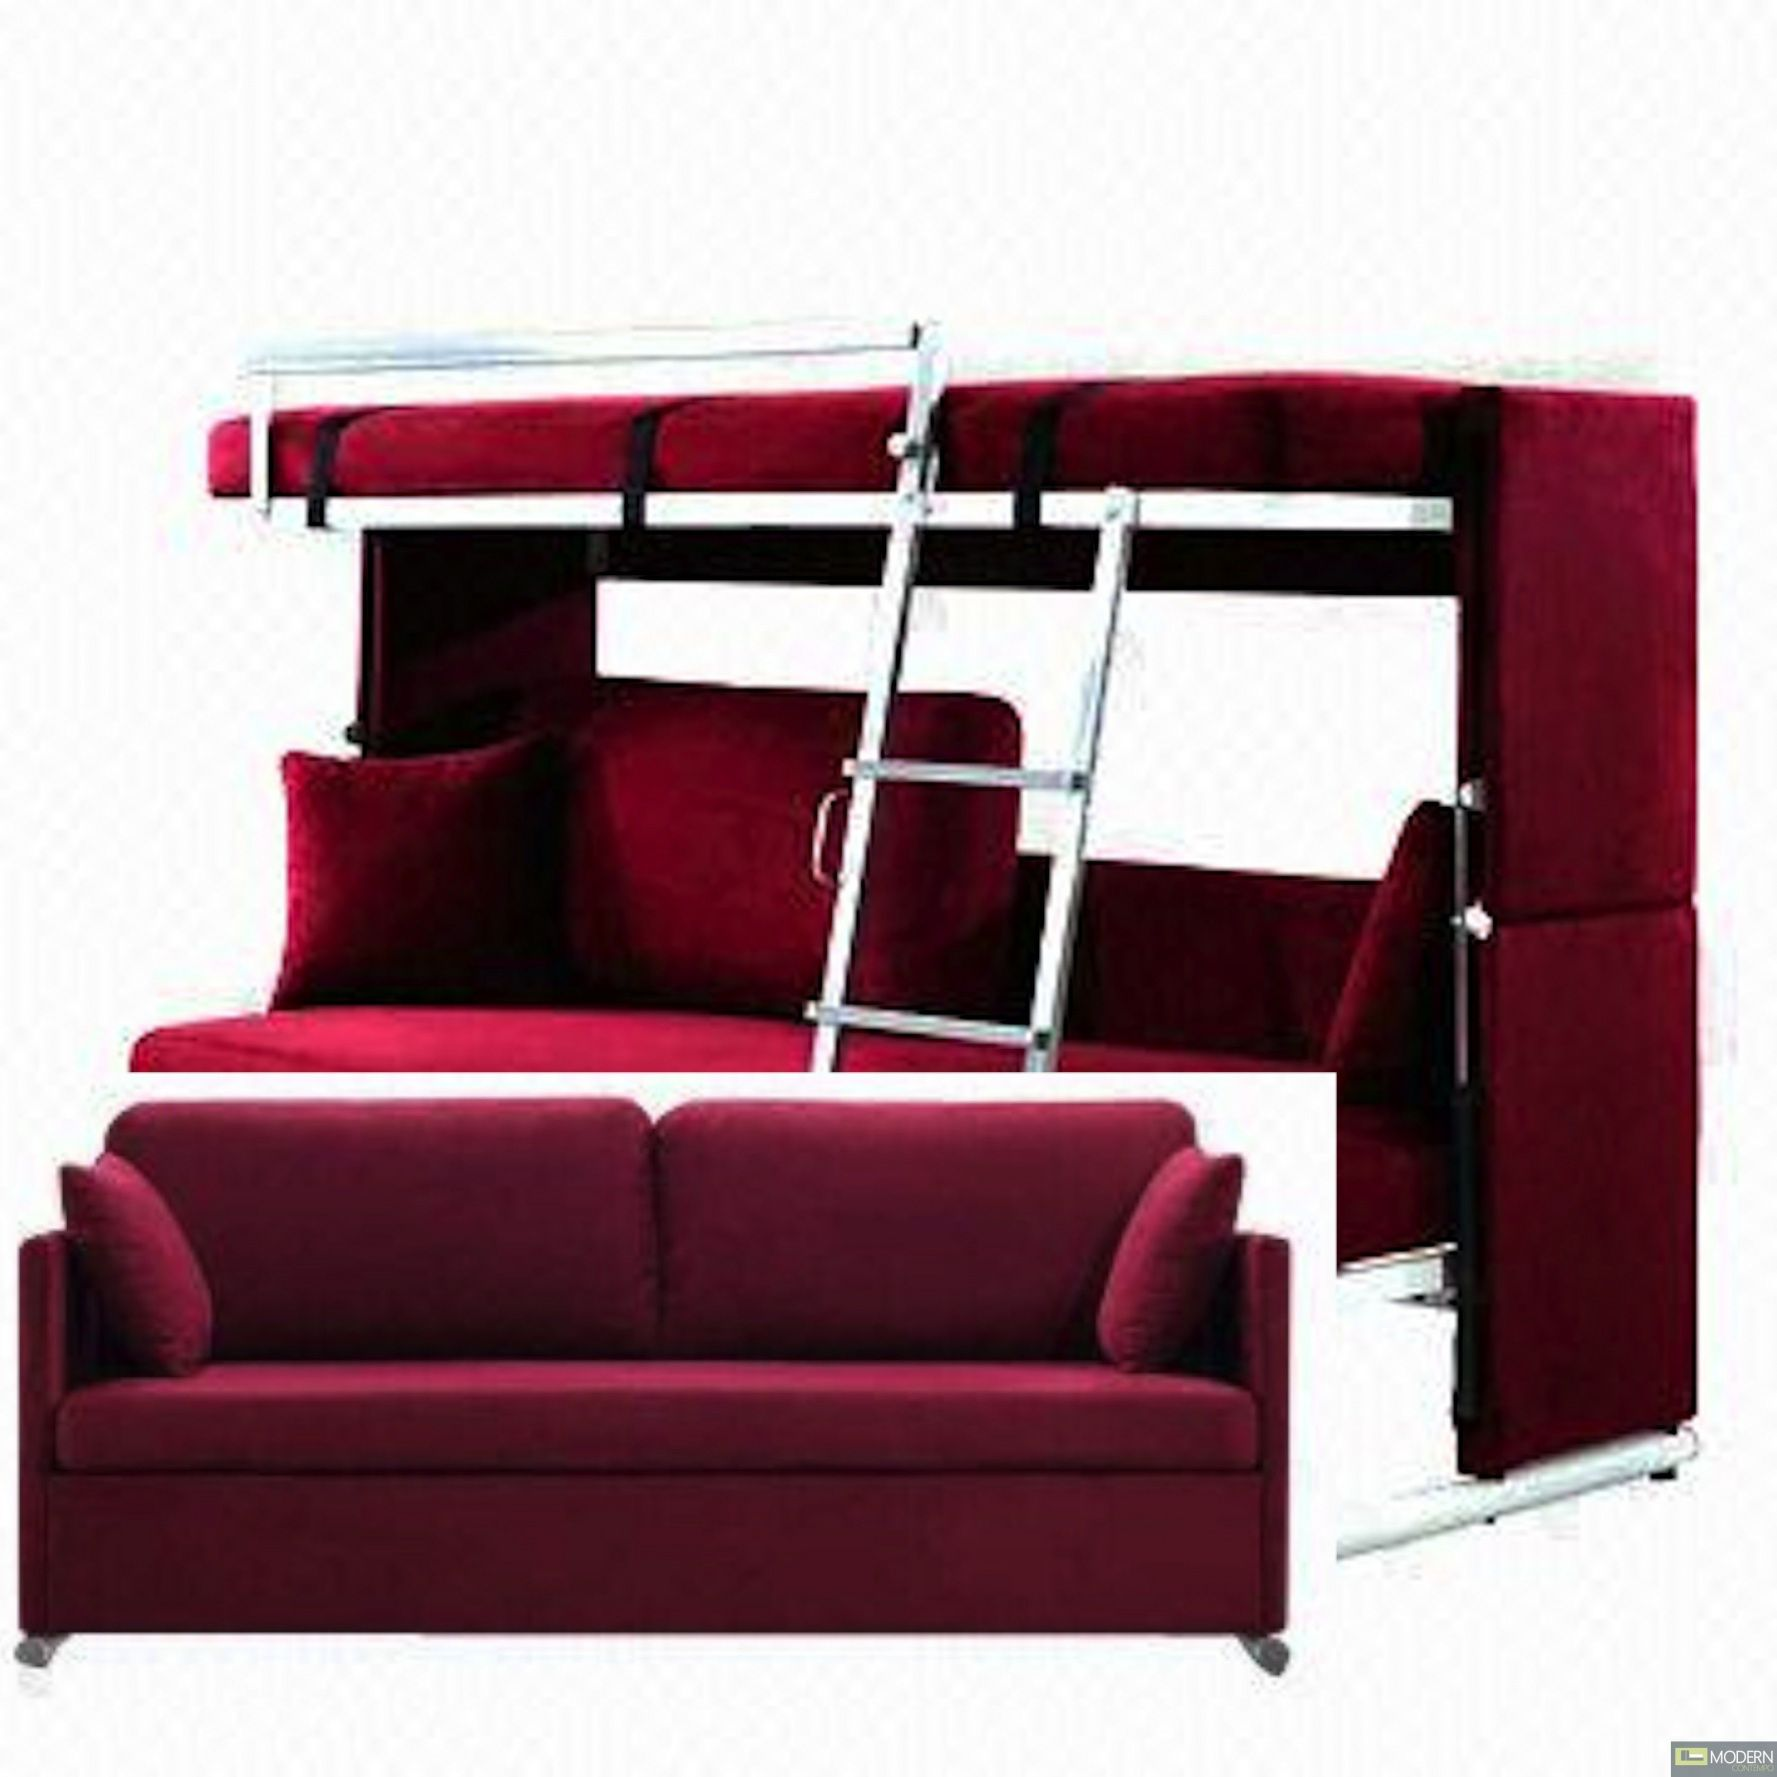 Pin By Neby On Bedroom Apartments Ideas Couch Bed Sofa